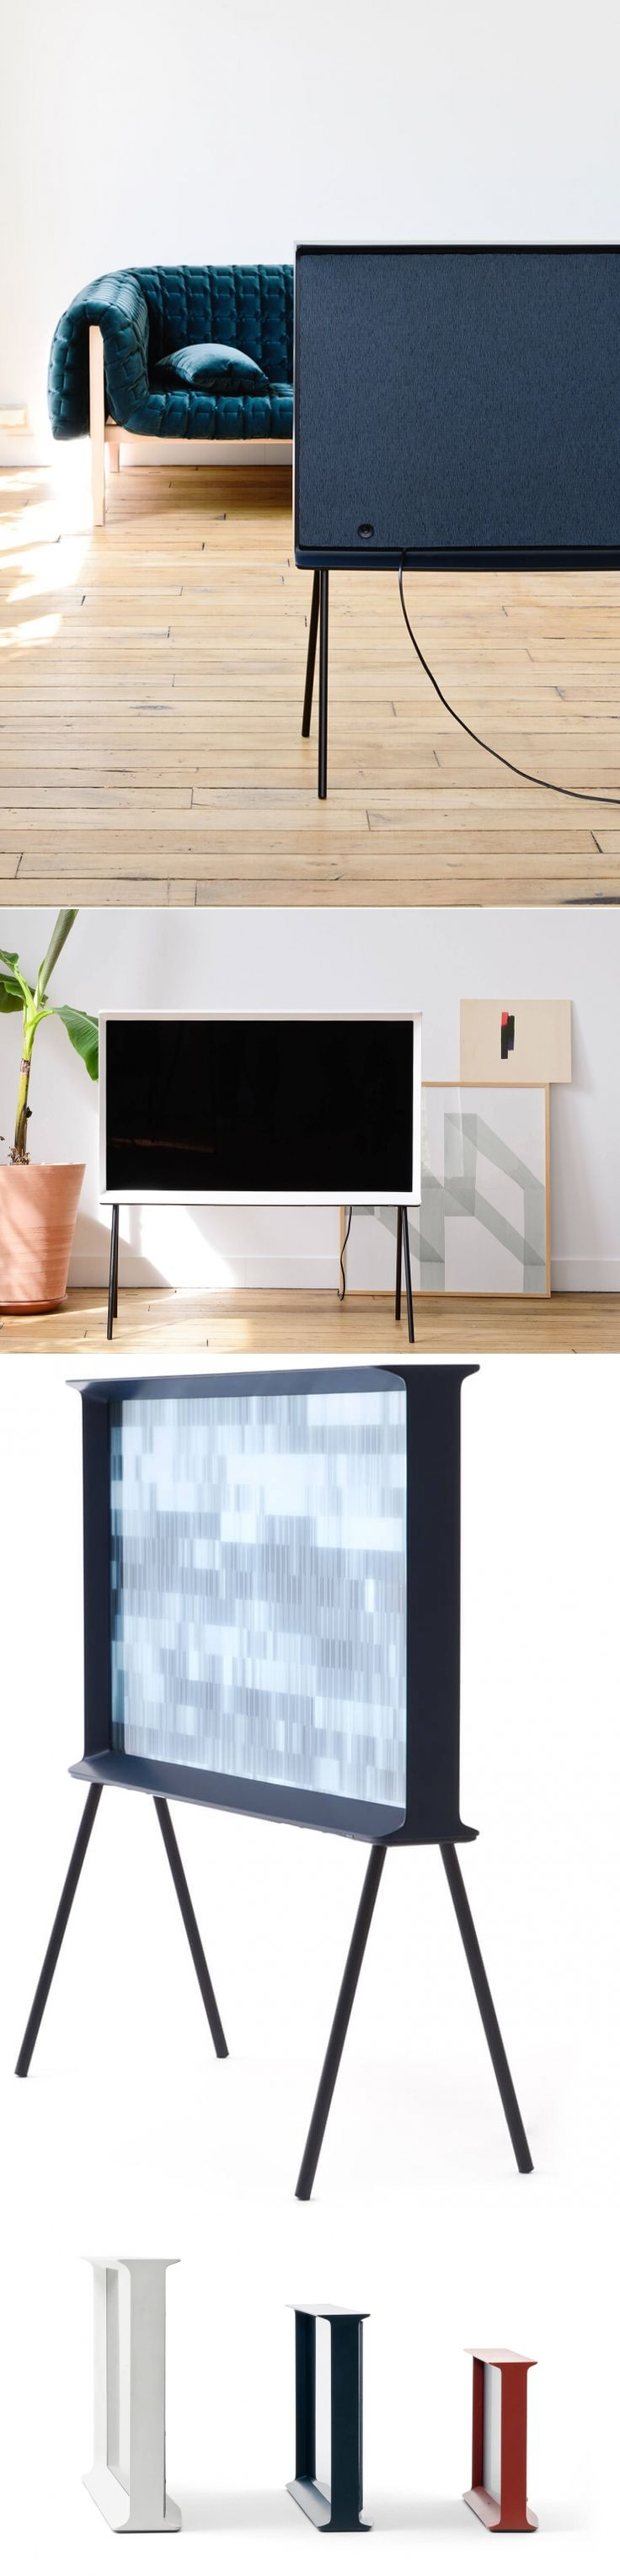 Introducing Samsung SERIF TV